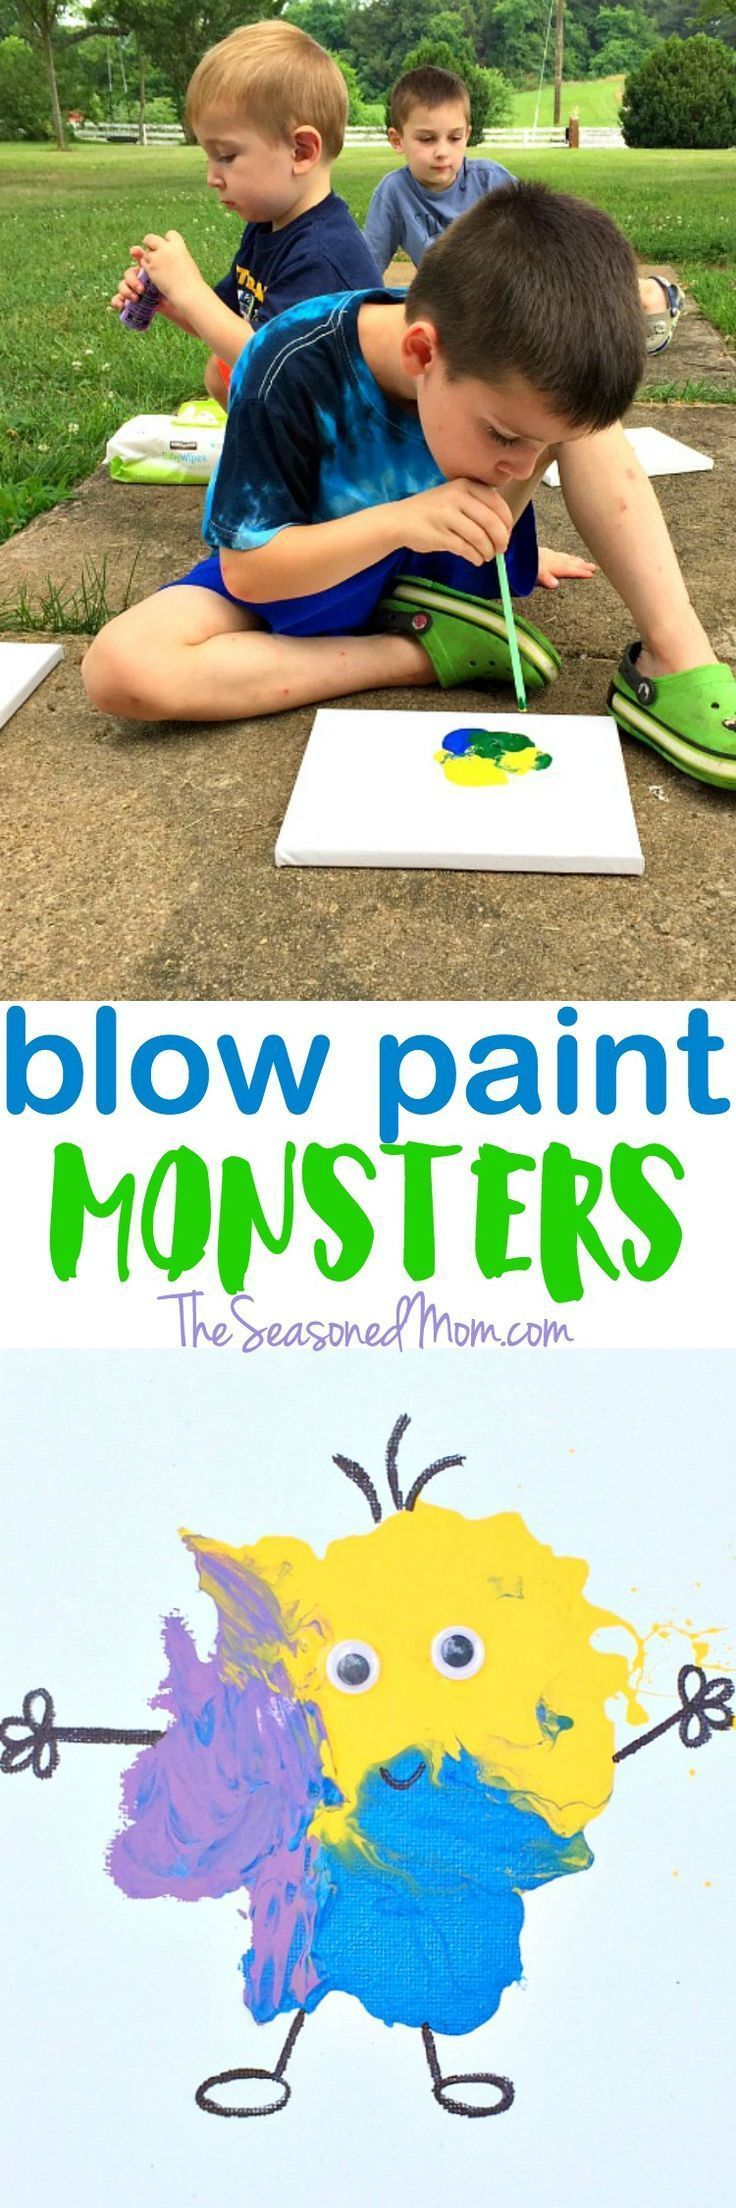 Let your kids' imaginations run wild with this Easy Art Activity for Kids: Blow Paint Monsters! With some paint and a simple drinking straw, toddlers, preschoolers, and kindergarteners can create endless varieties of colorful and whimsical creatures!